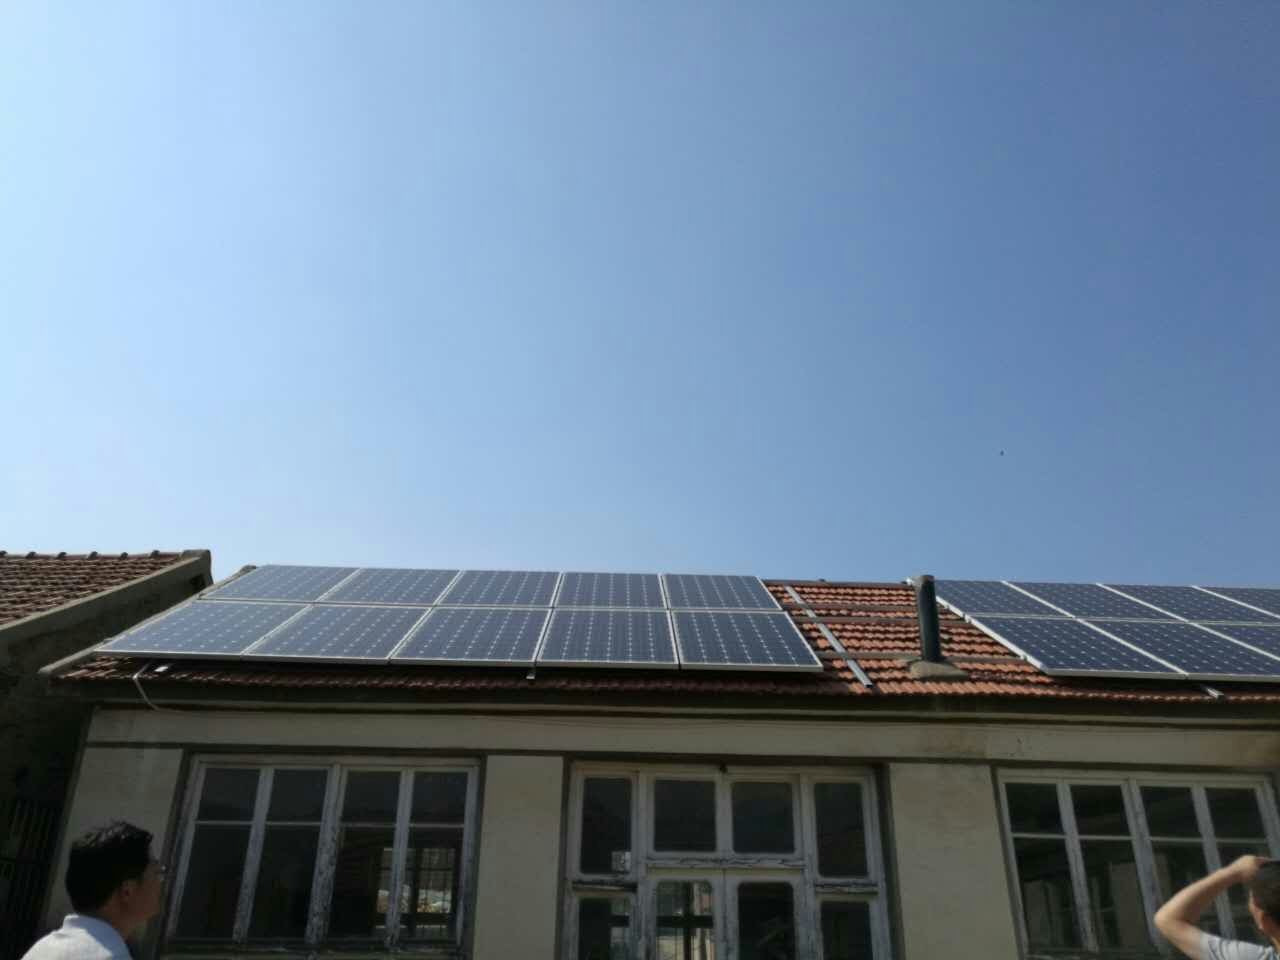 solar roofing power system on house in the countryside